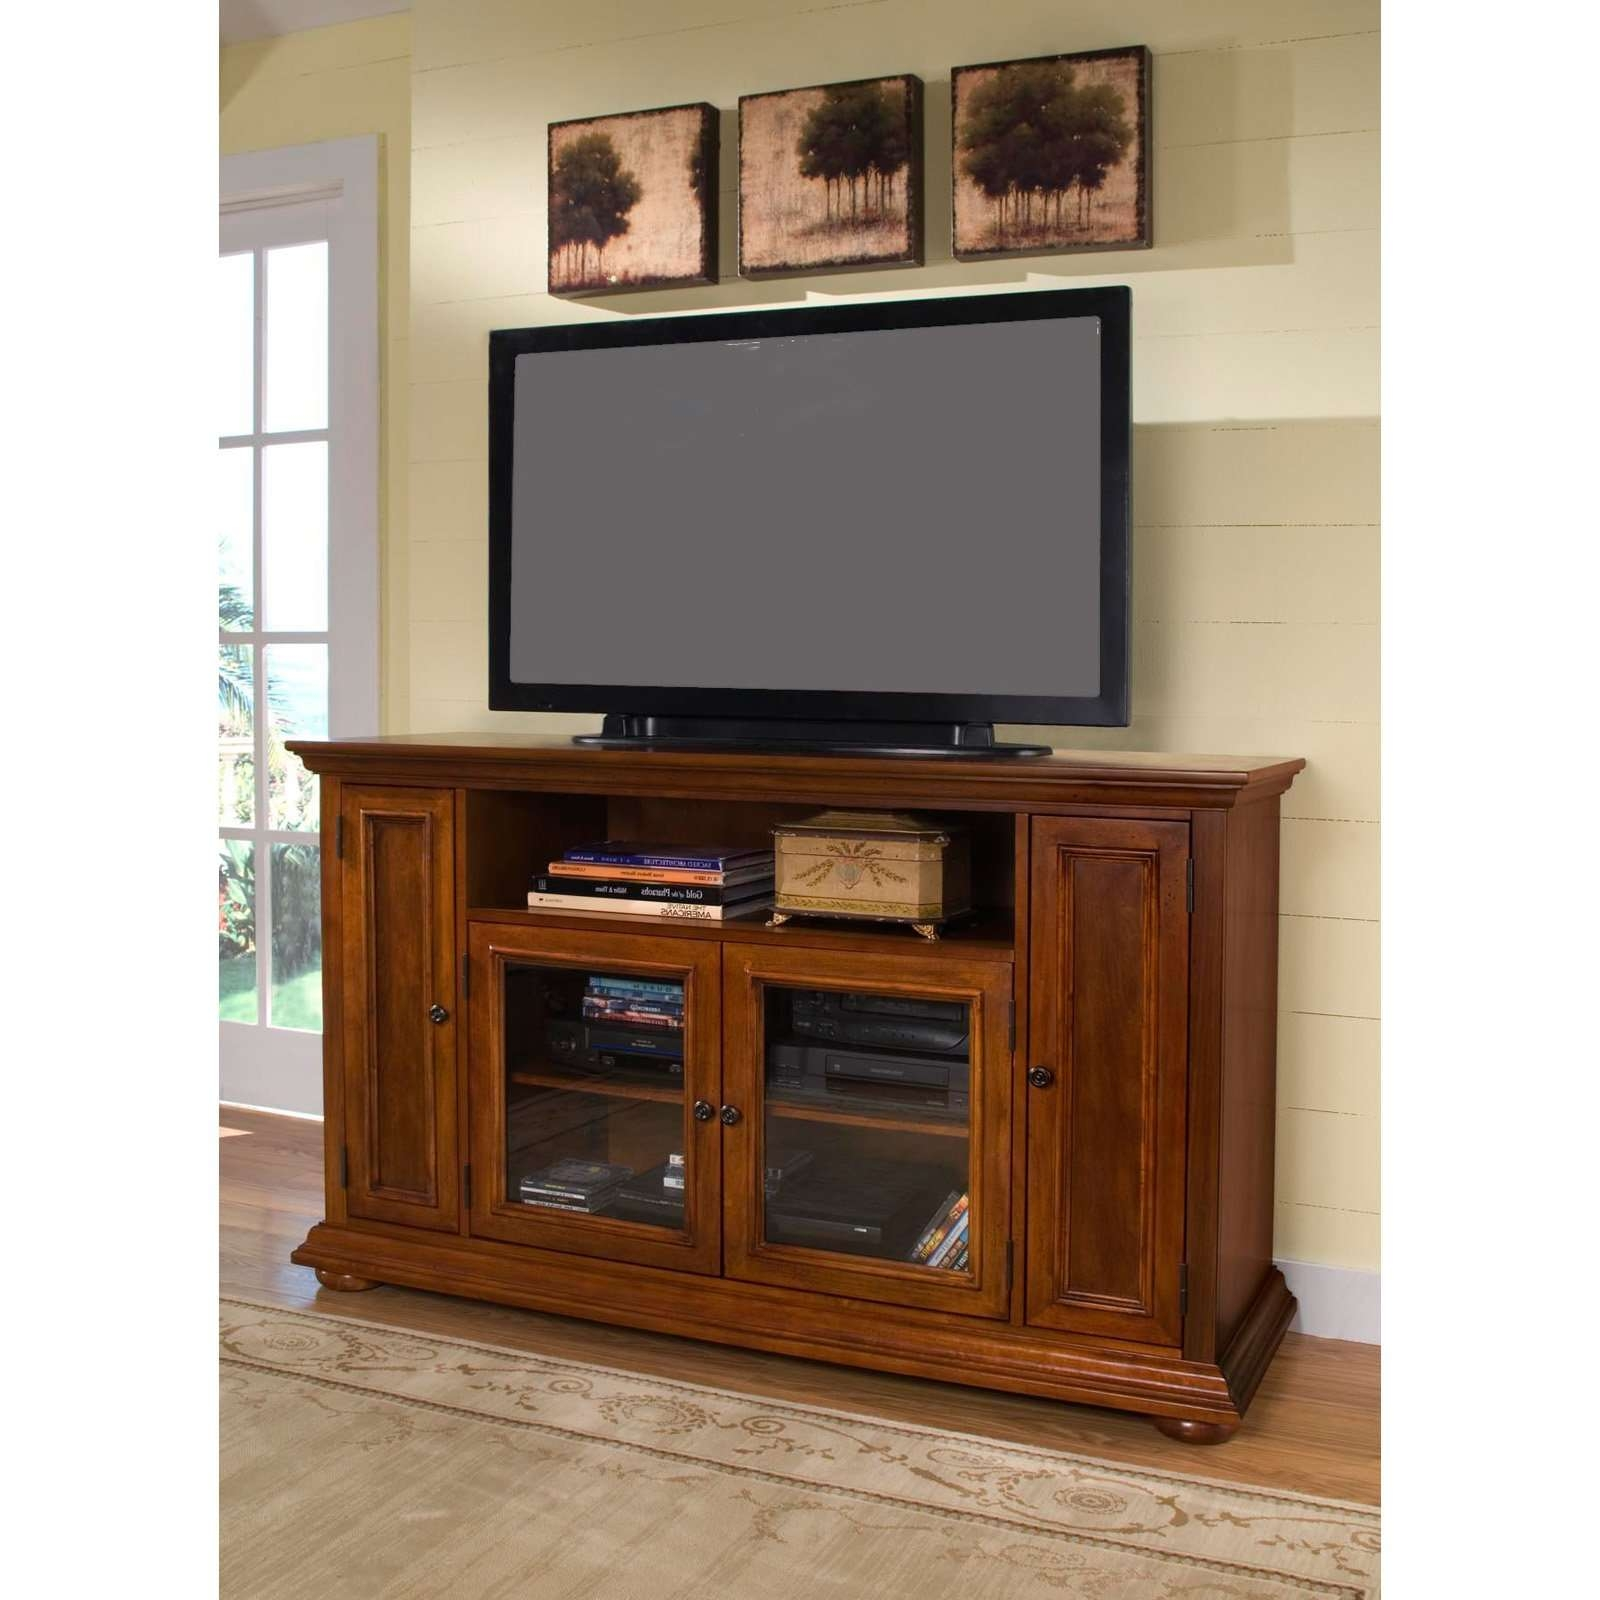 Home Decor: Marvelous Wood Tv Stands For Flat Screens Plus Light In Oak Tv Stands For Flat Screens (View 8 of 15)